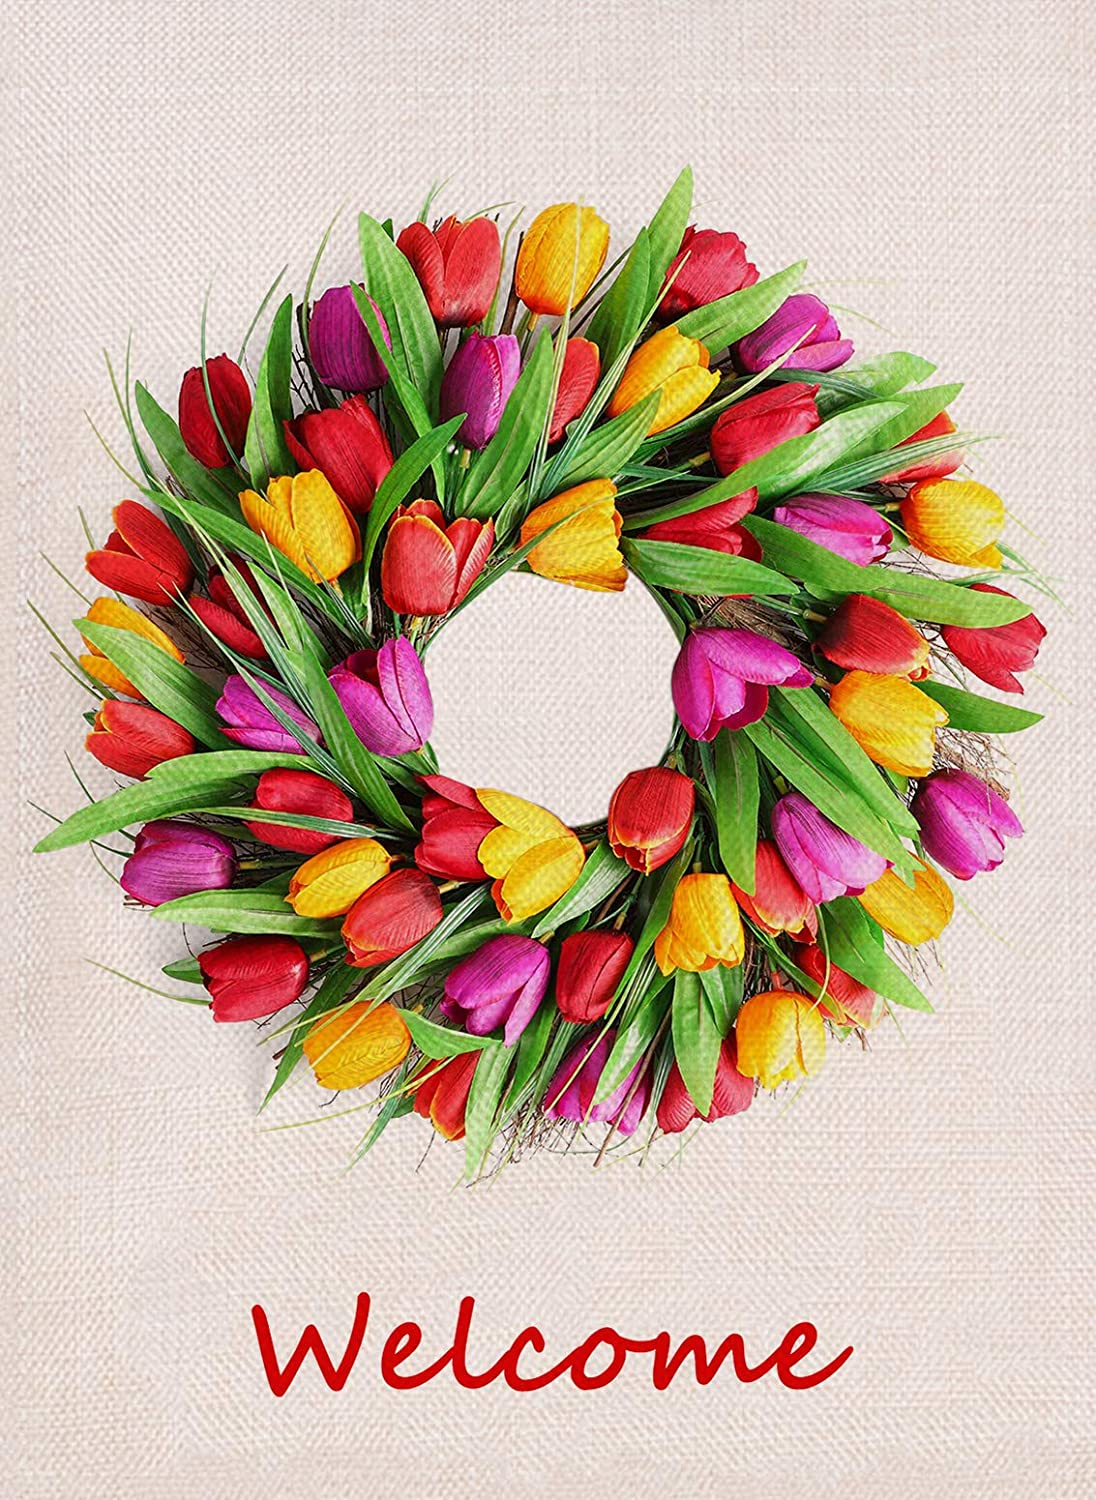 Furiaz Tulip Wreath Welcome Garden Flag, Spring Flower Wreath House Yard Outdoor Decorative Flag Floral, Rustic Burlap Farmhouse Summer Outside Decorations Garland Sign Home Decor Flag 12.5 x 18